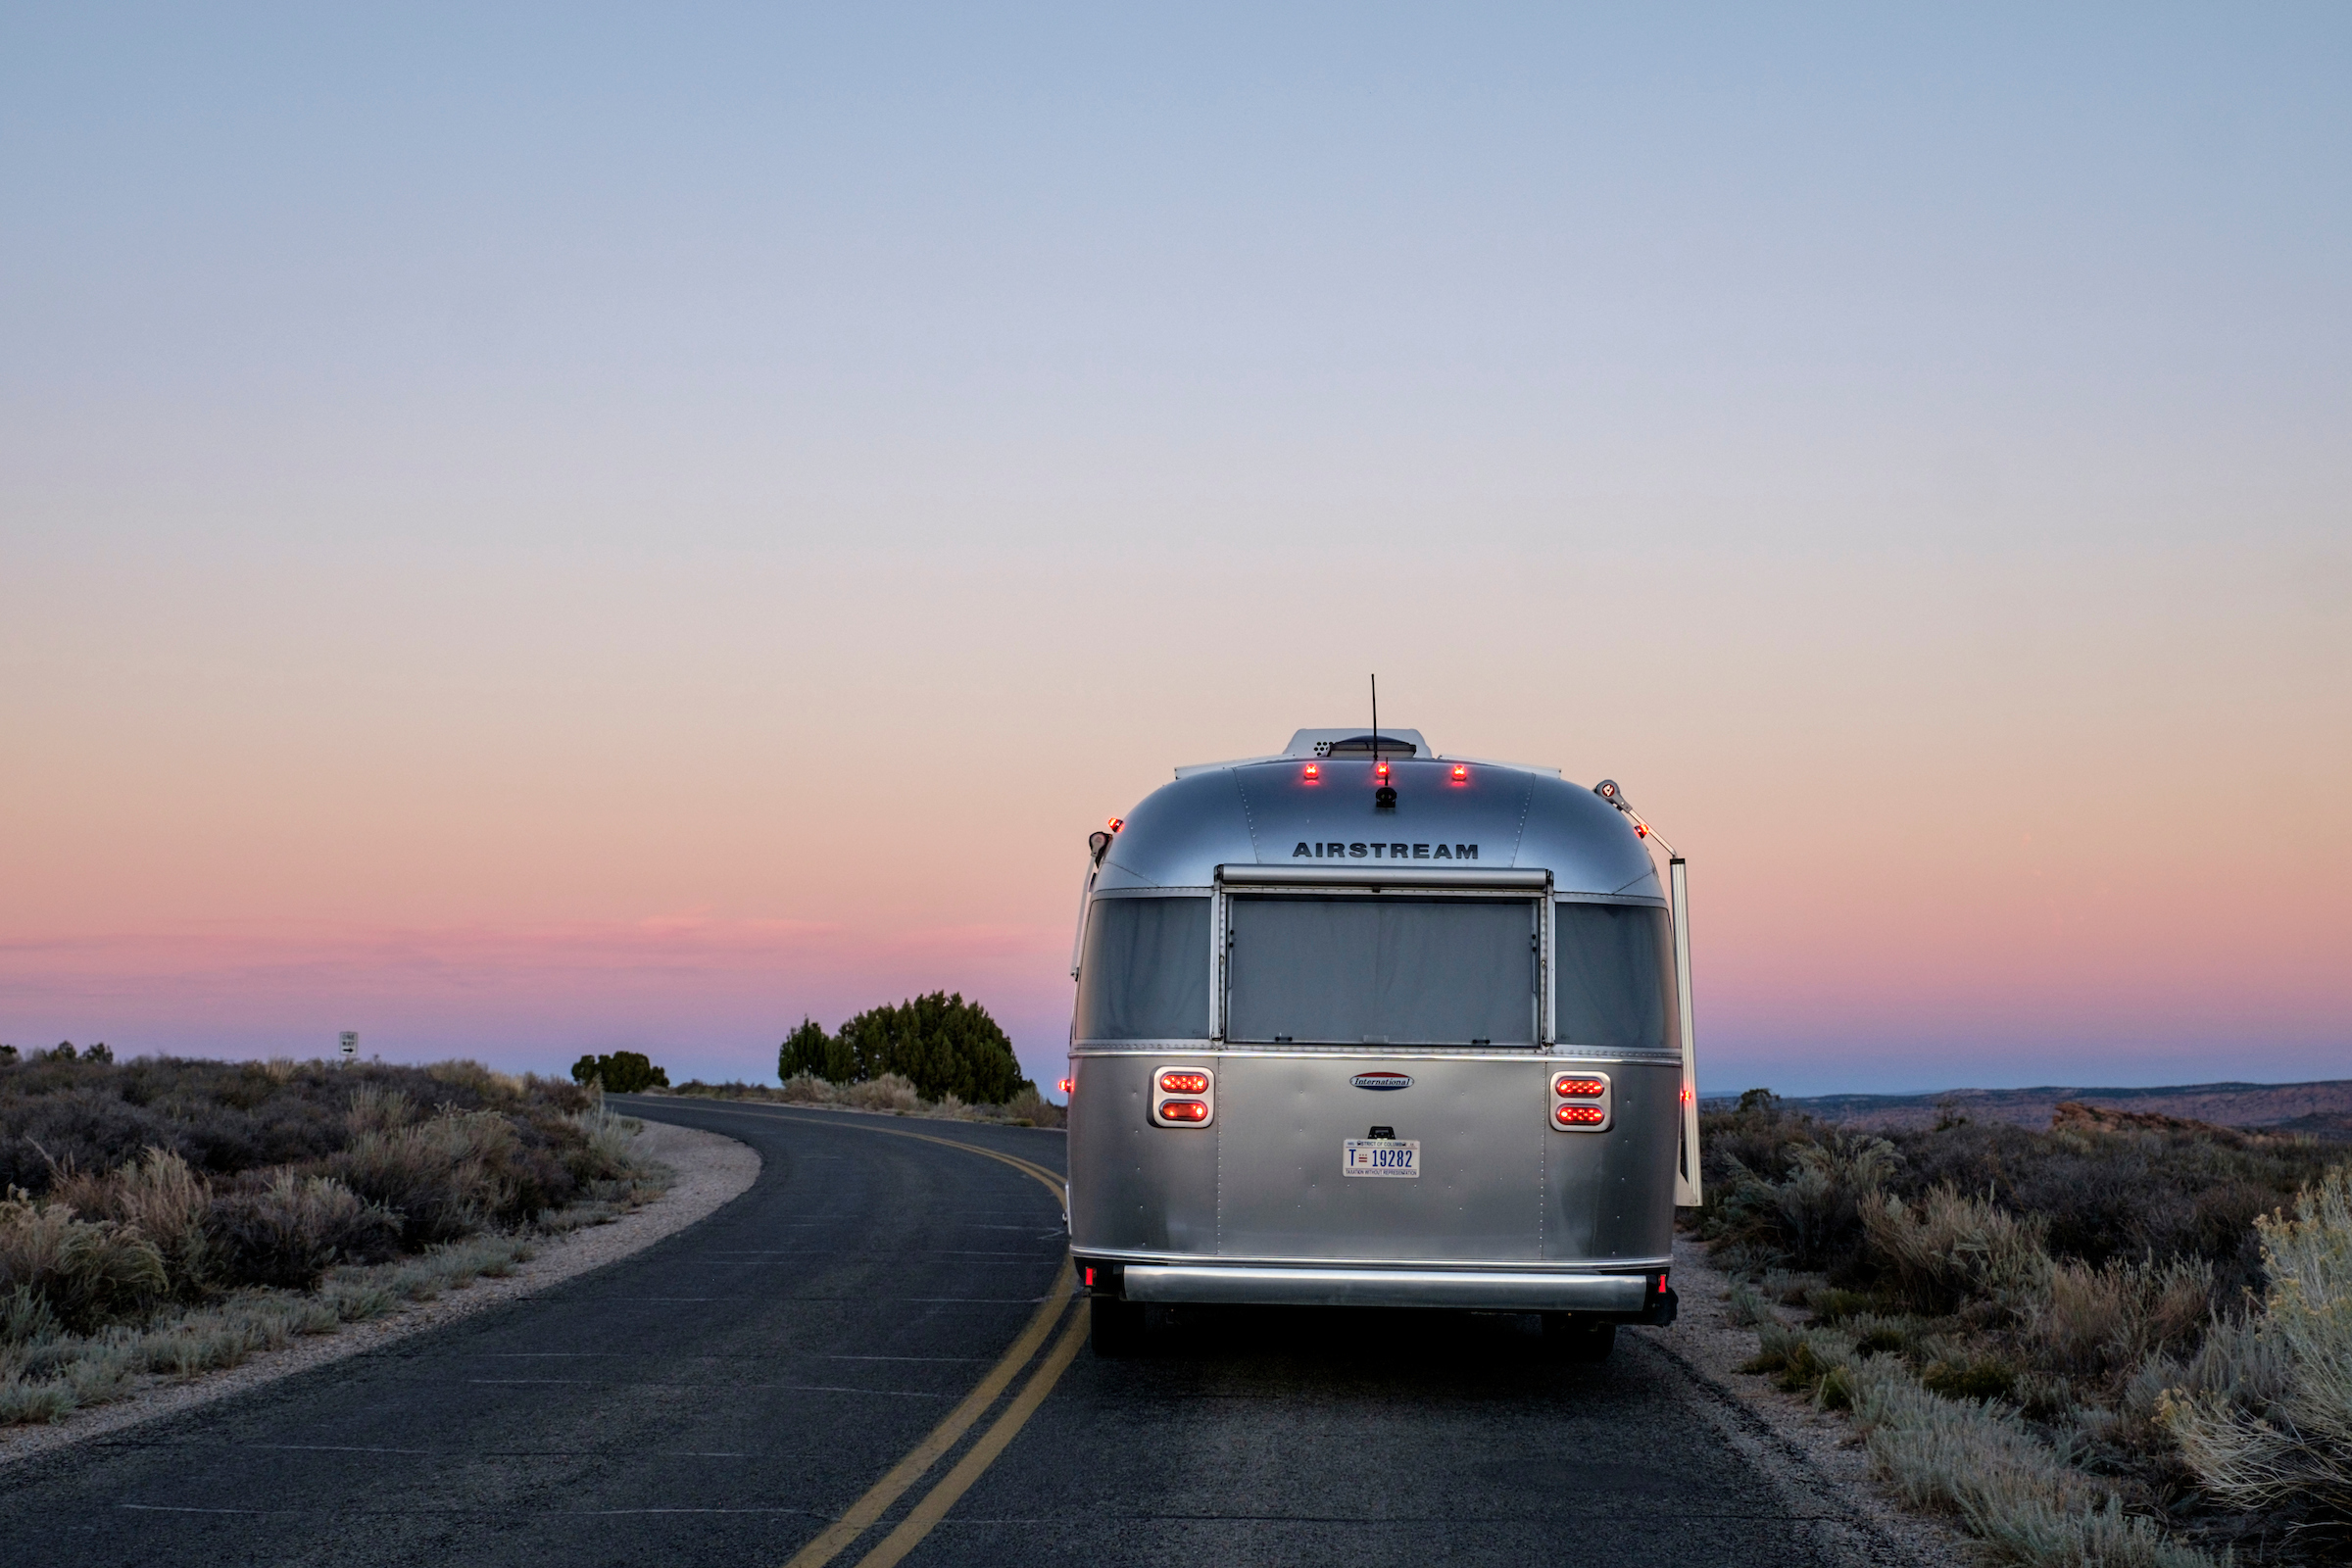 Wally the Airstream on the road in Arches National Park.